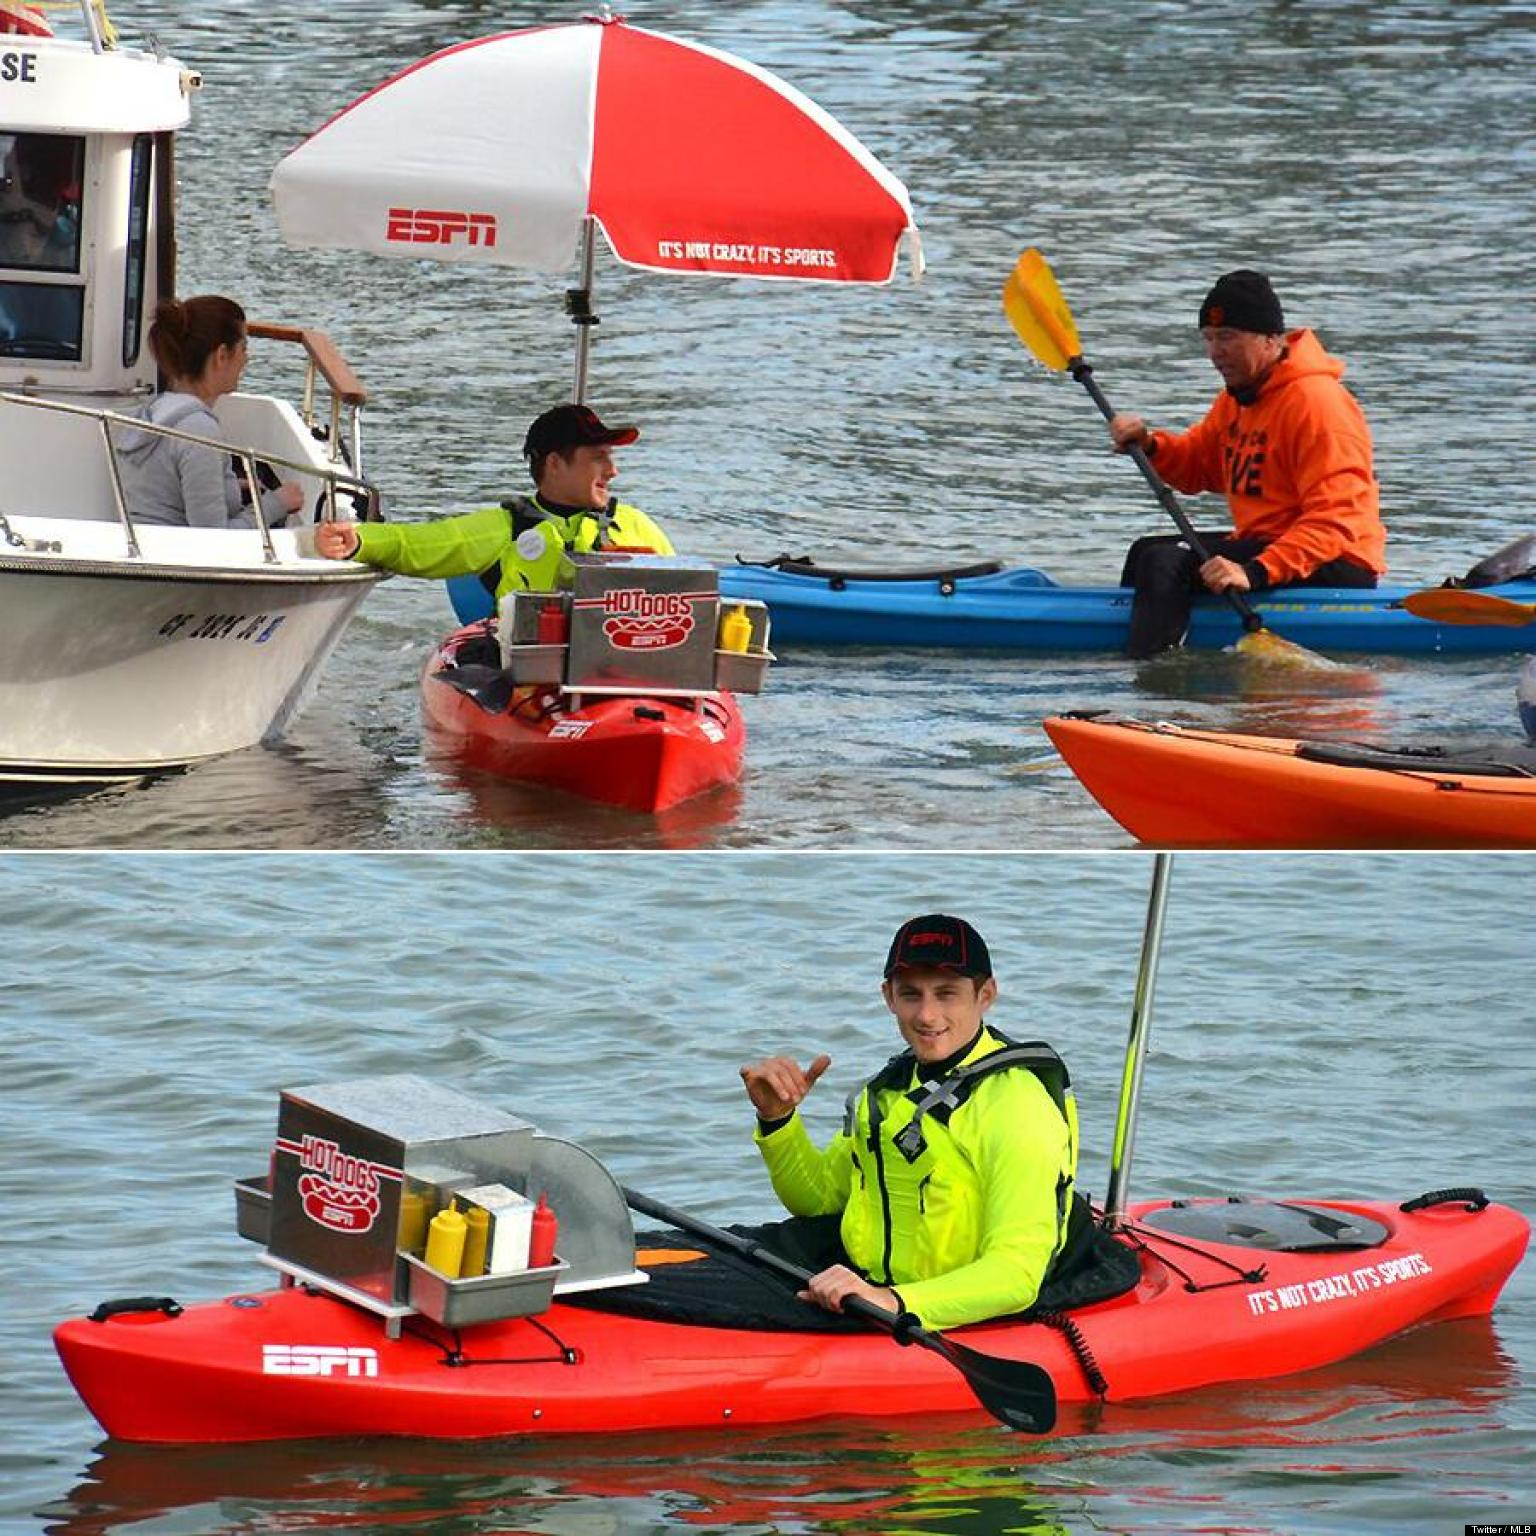 Hot Dog Kayak Serves Giants Fans In McCovey Cove Outside